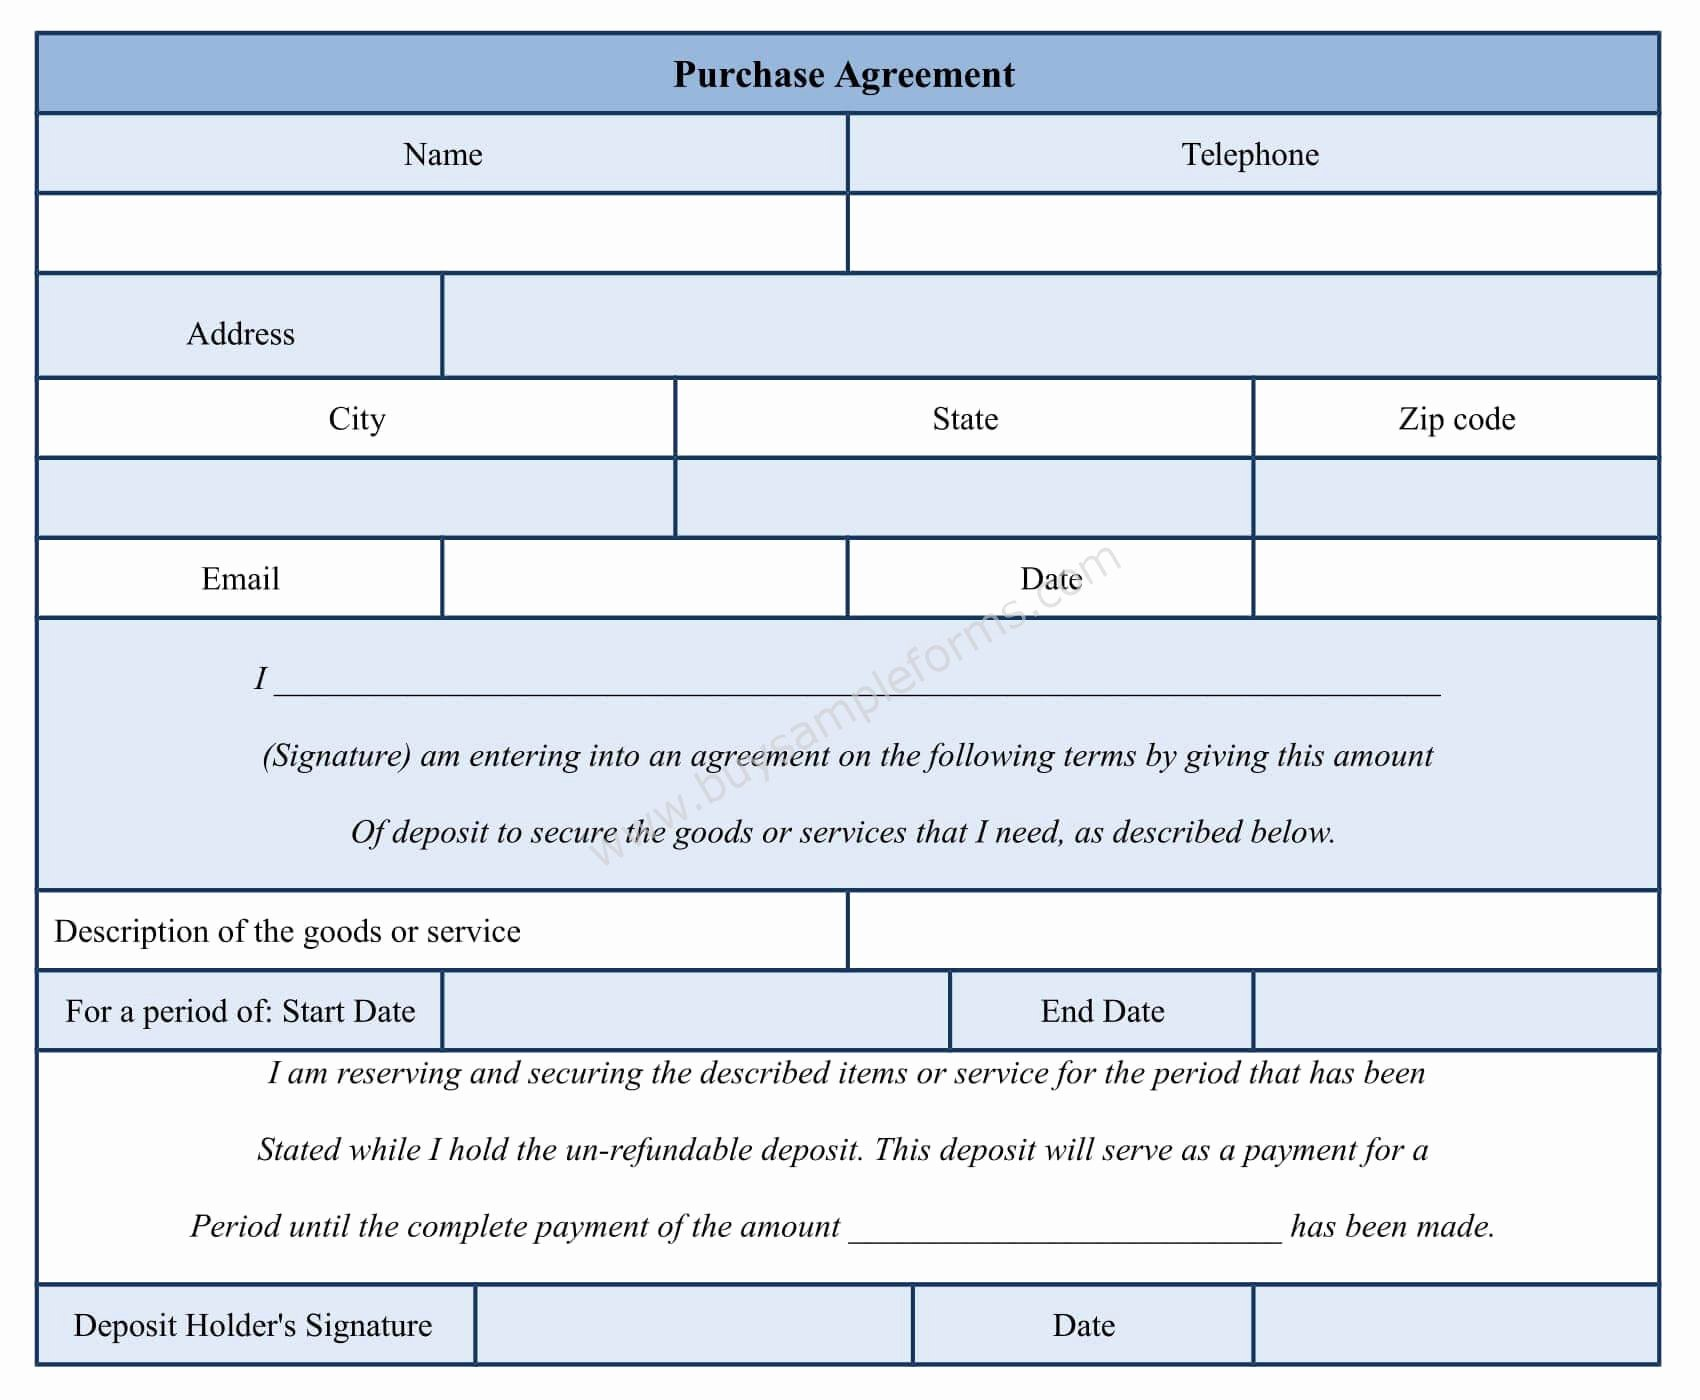 Purchase Agreement Template Word Inspirational Purchase Agreement form Template Sample forms